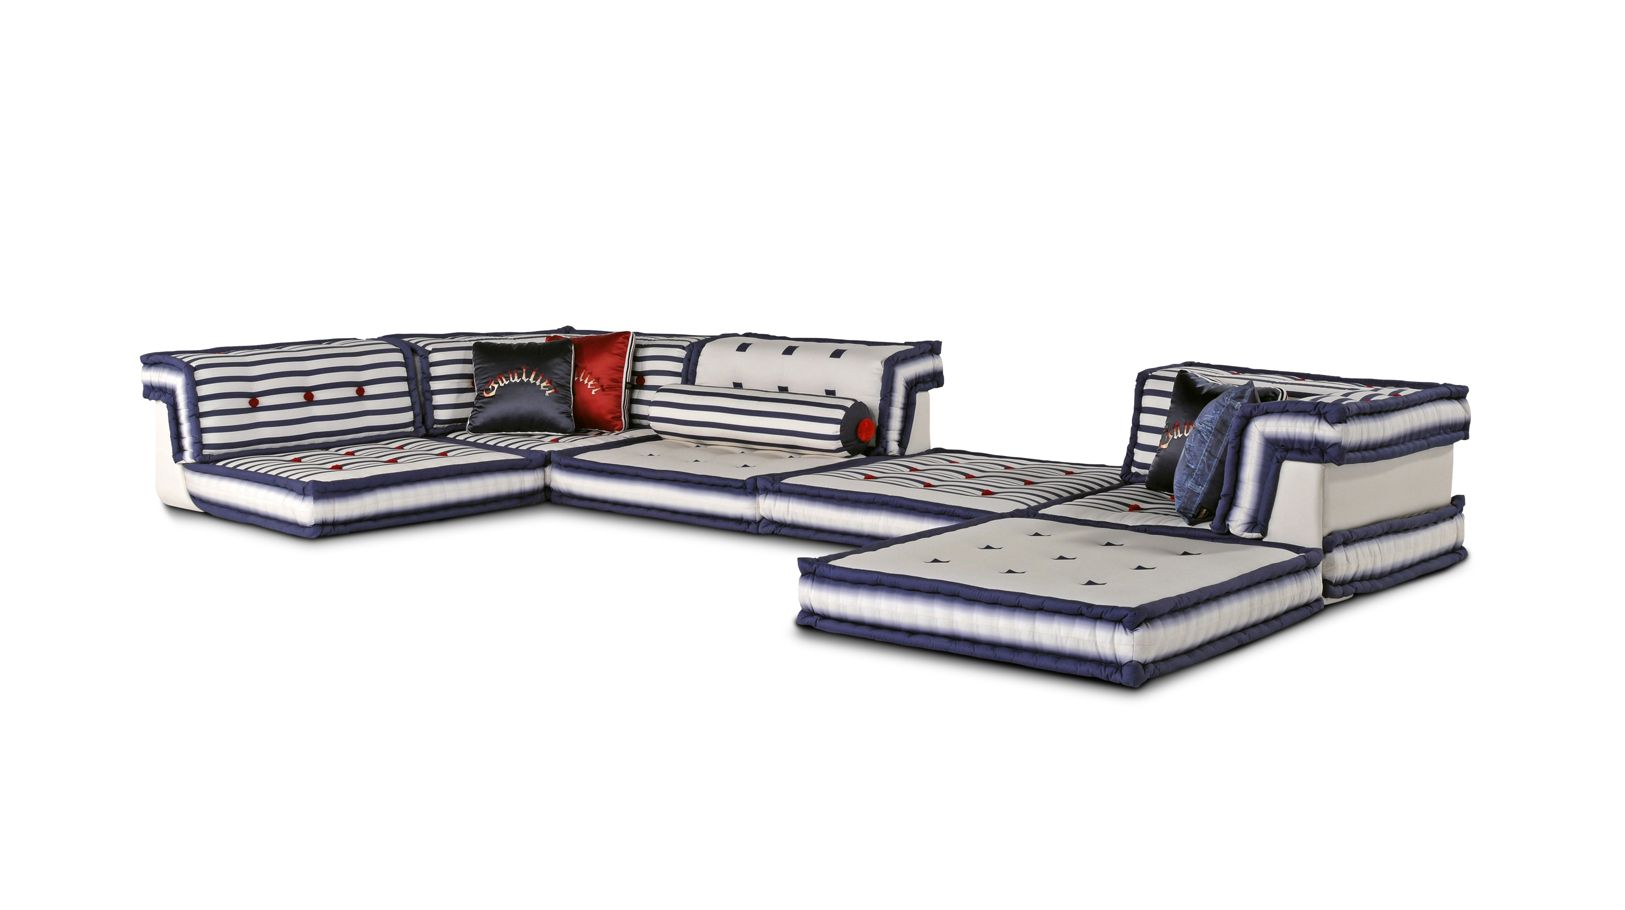 Mah jong modular sofa collection from roche bobois refil for Mah jong modular sofa knock off